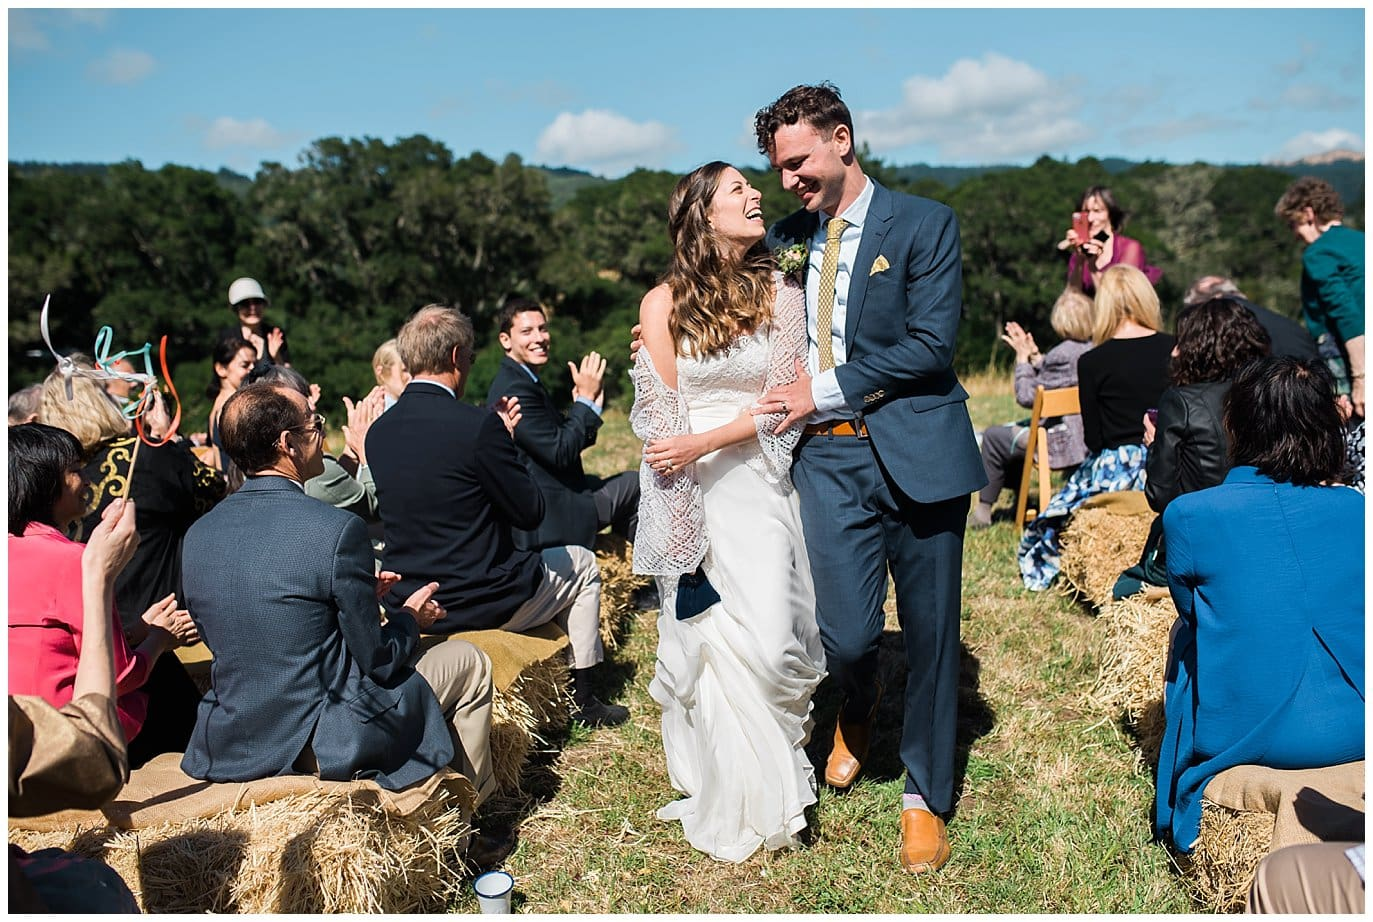 bride and groom walk back down the aisle after wedding ceremony at Mann Family Farm wedding by California wedding photographer Jennie Crate